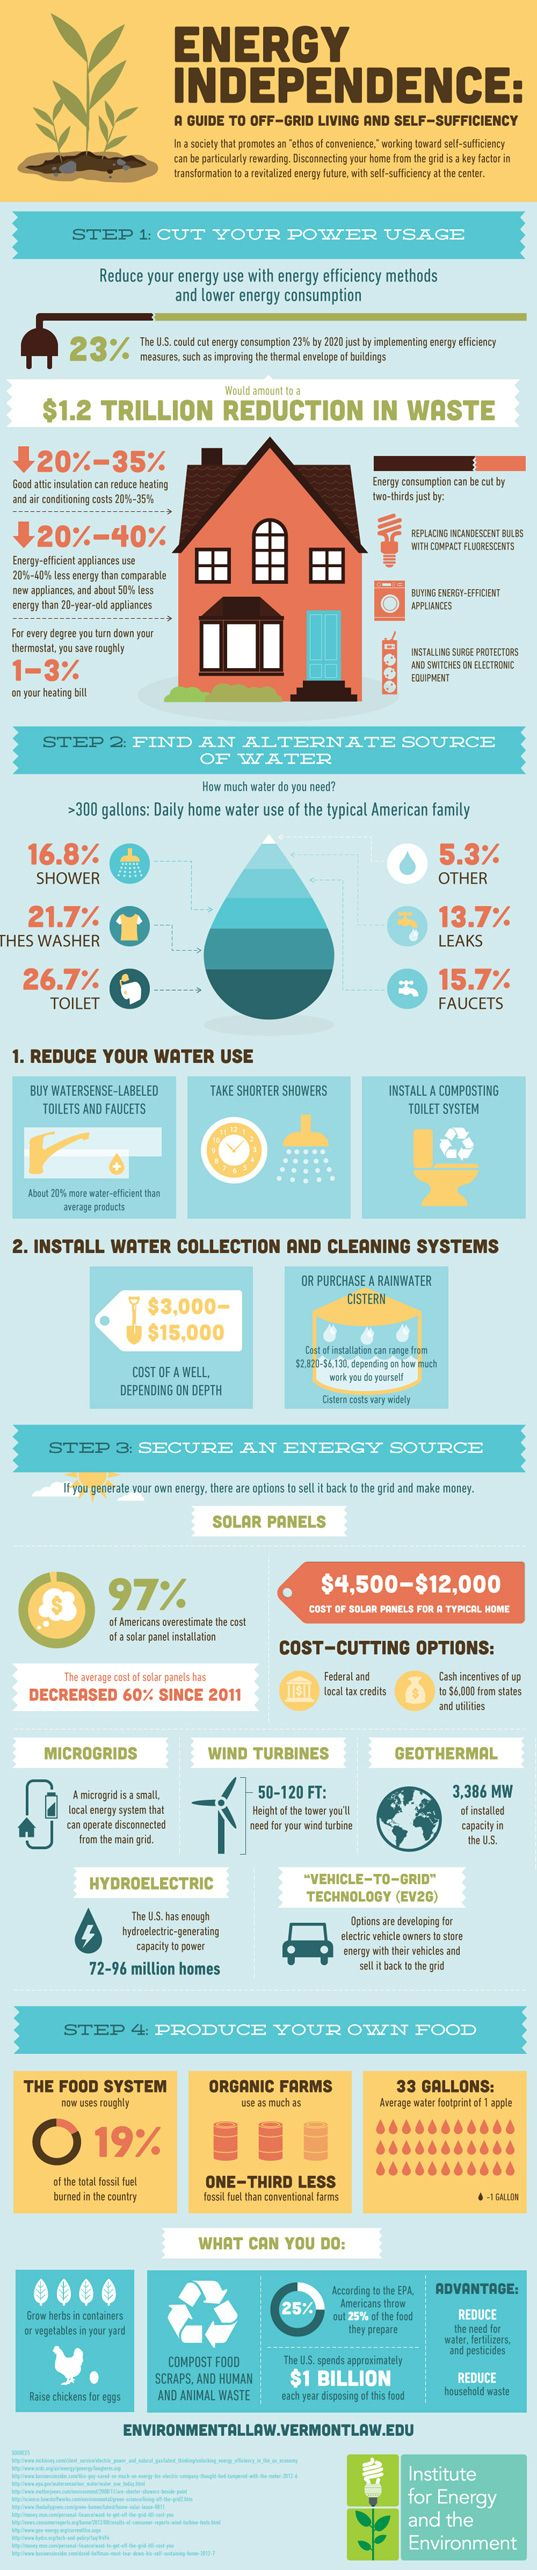 Infographic How to Achieve Energy Independence Through Off-Grid Living